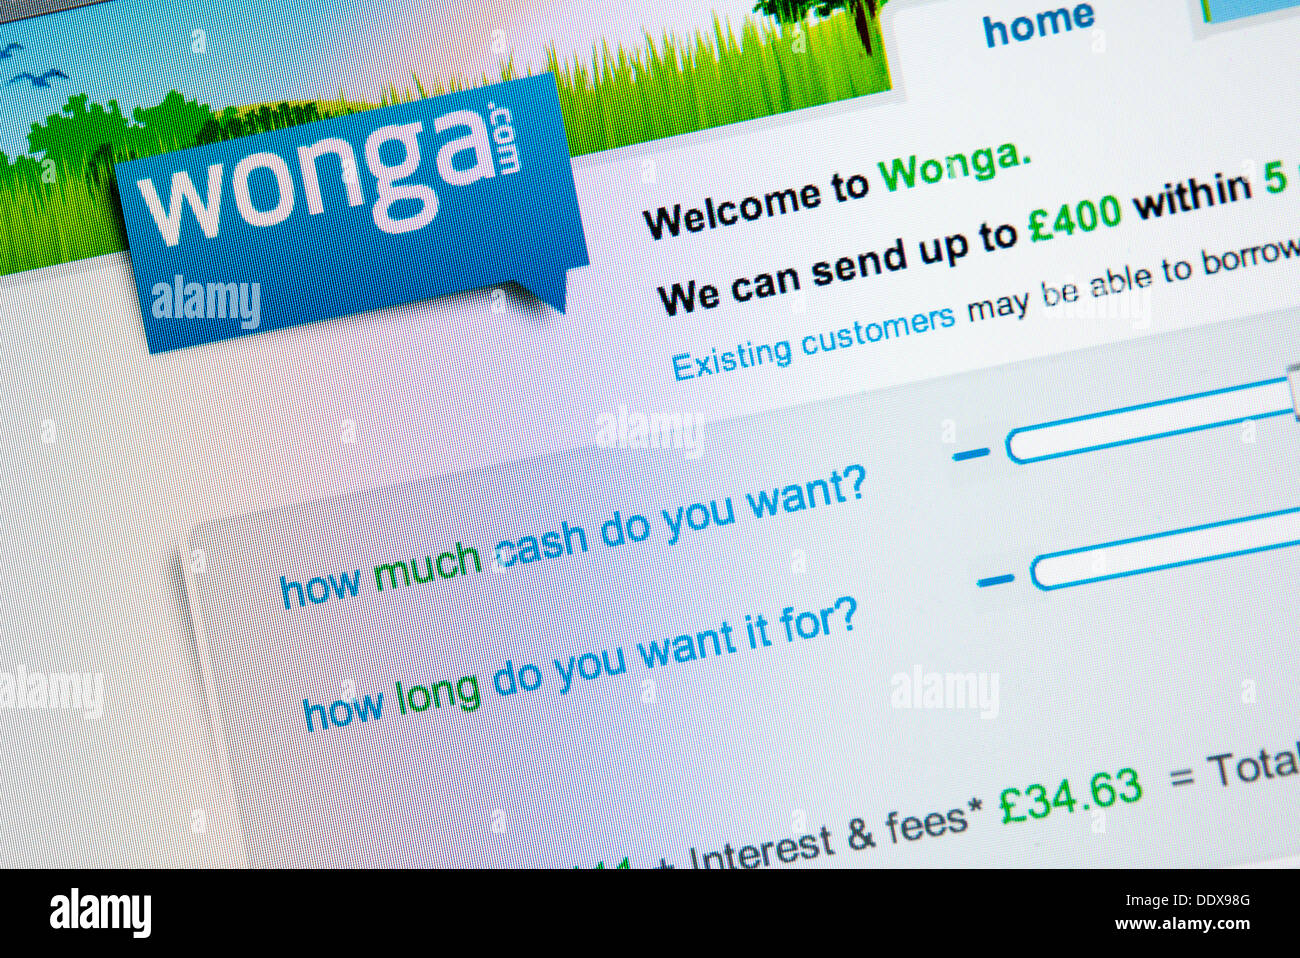 Official website for payday loans image 9